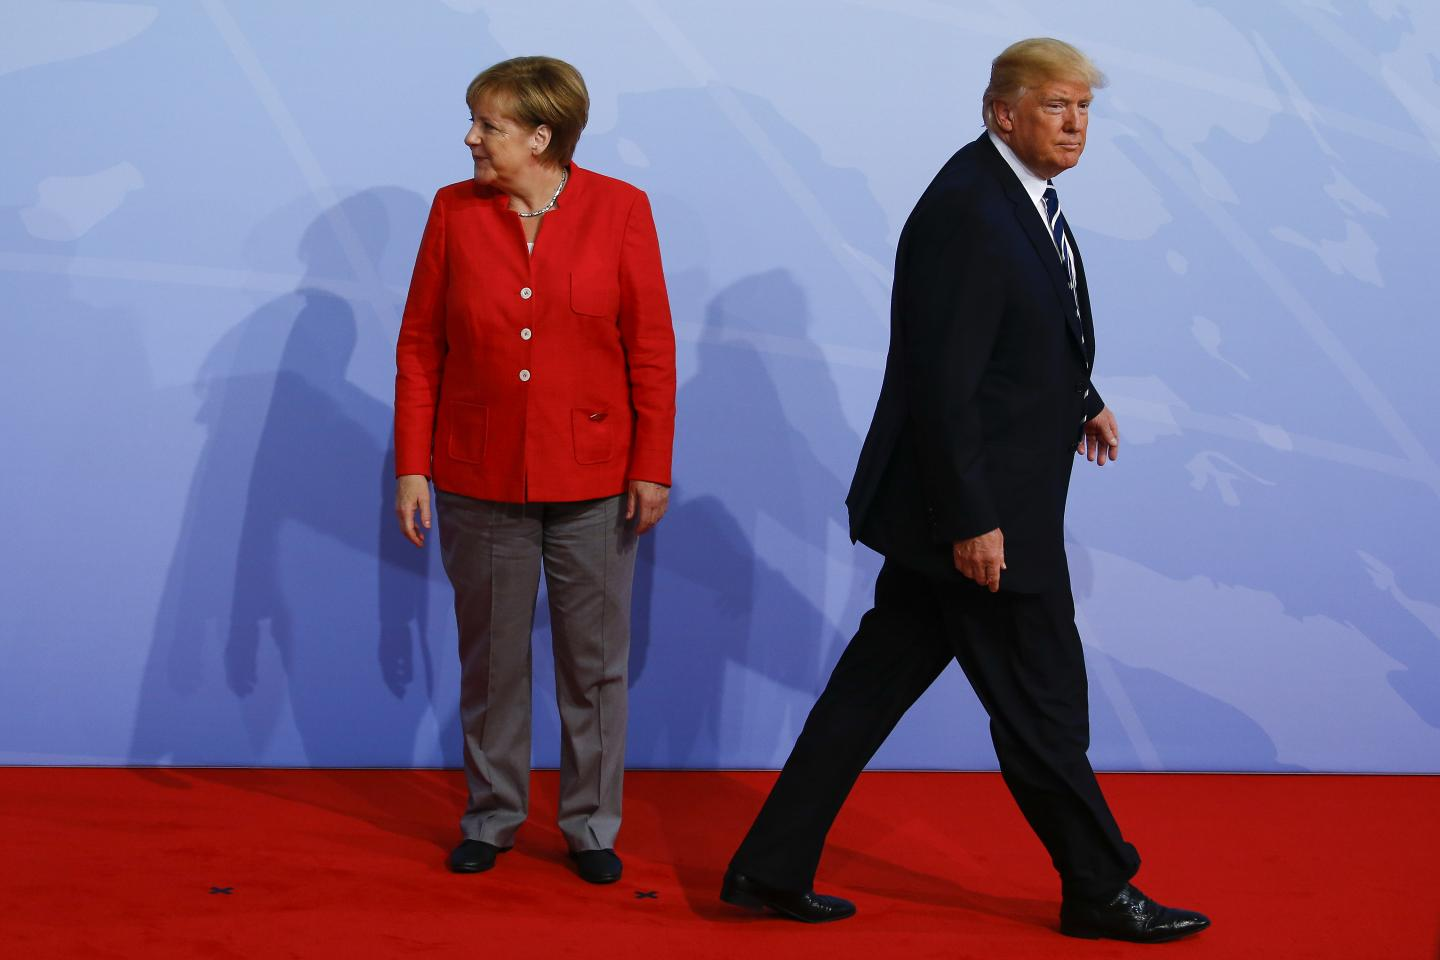 2017 was the year America abandoned its leadership of the world | Opinion https://t.co/TI8qGeCbnW https://t.co/xXOvAIbiF5